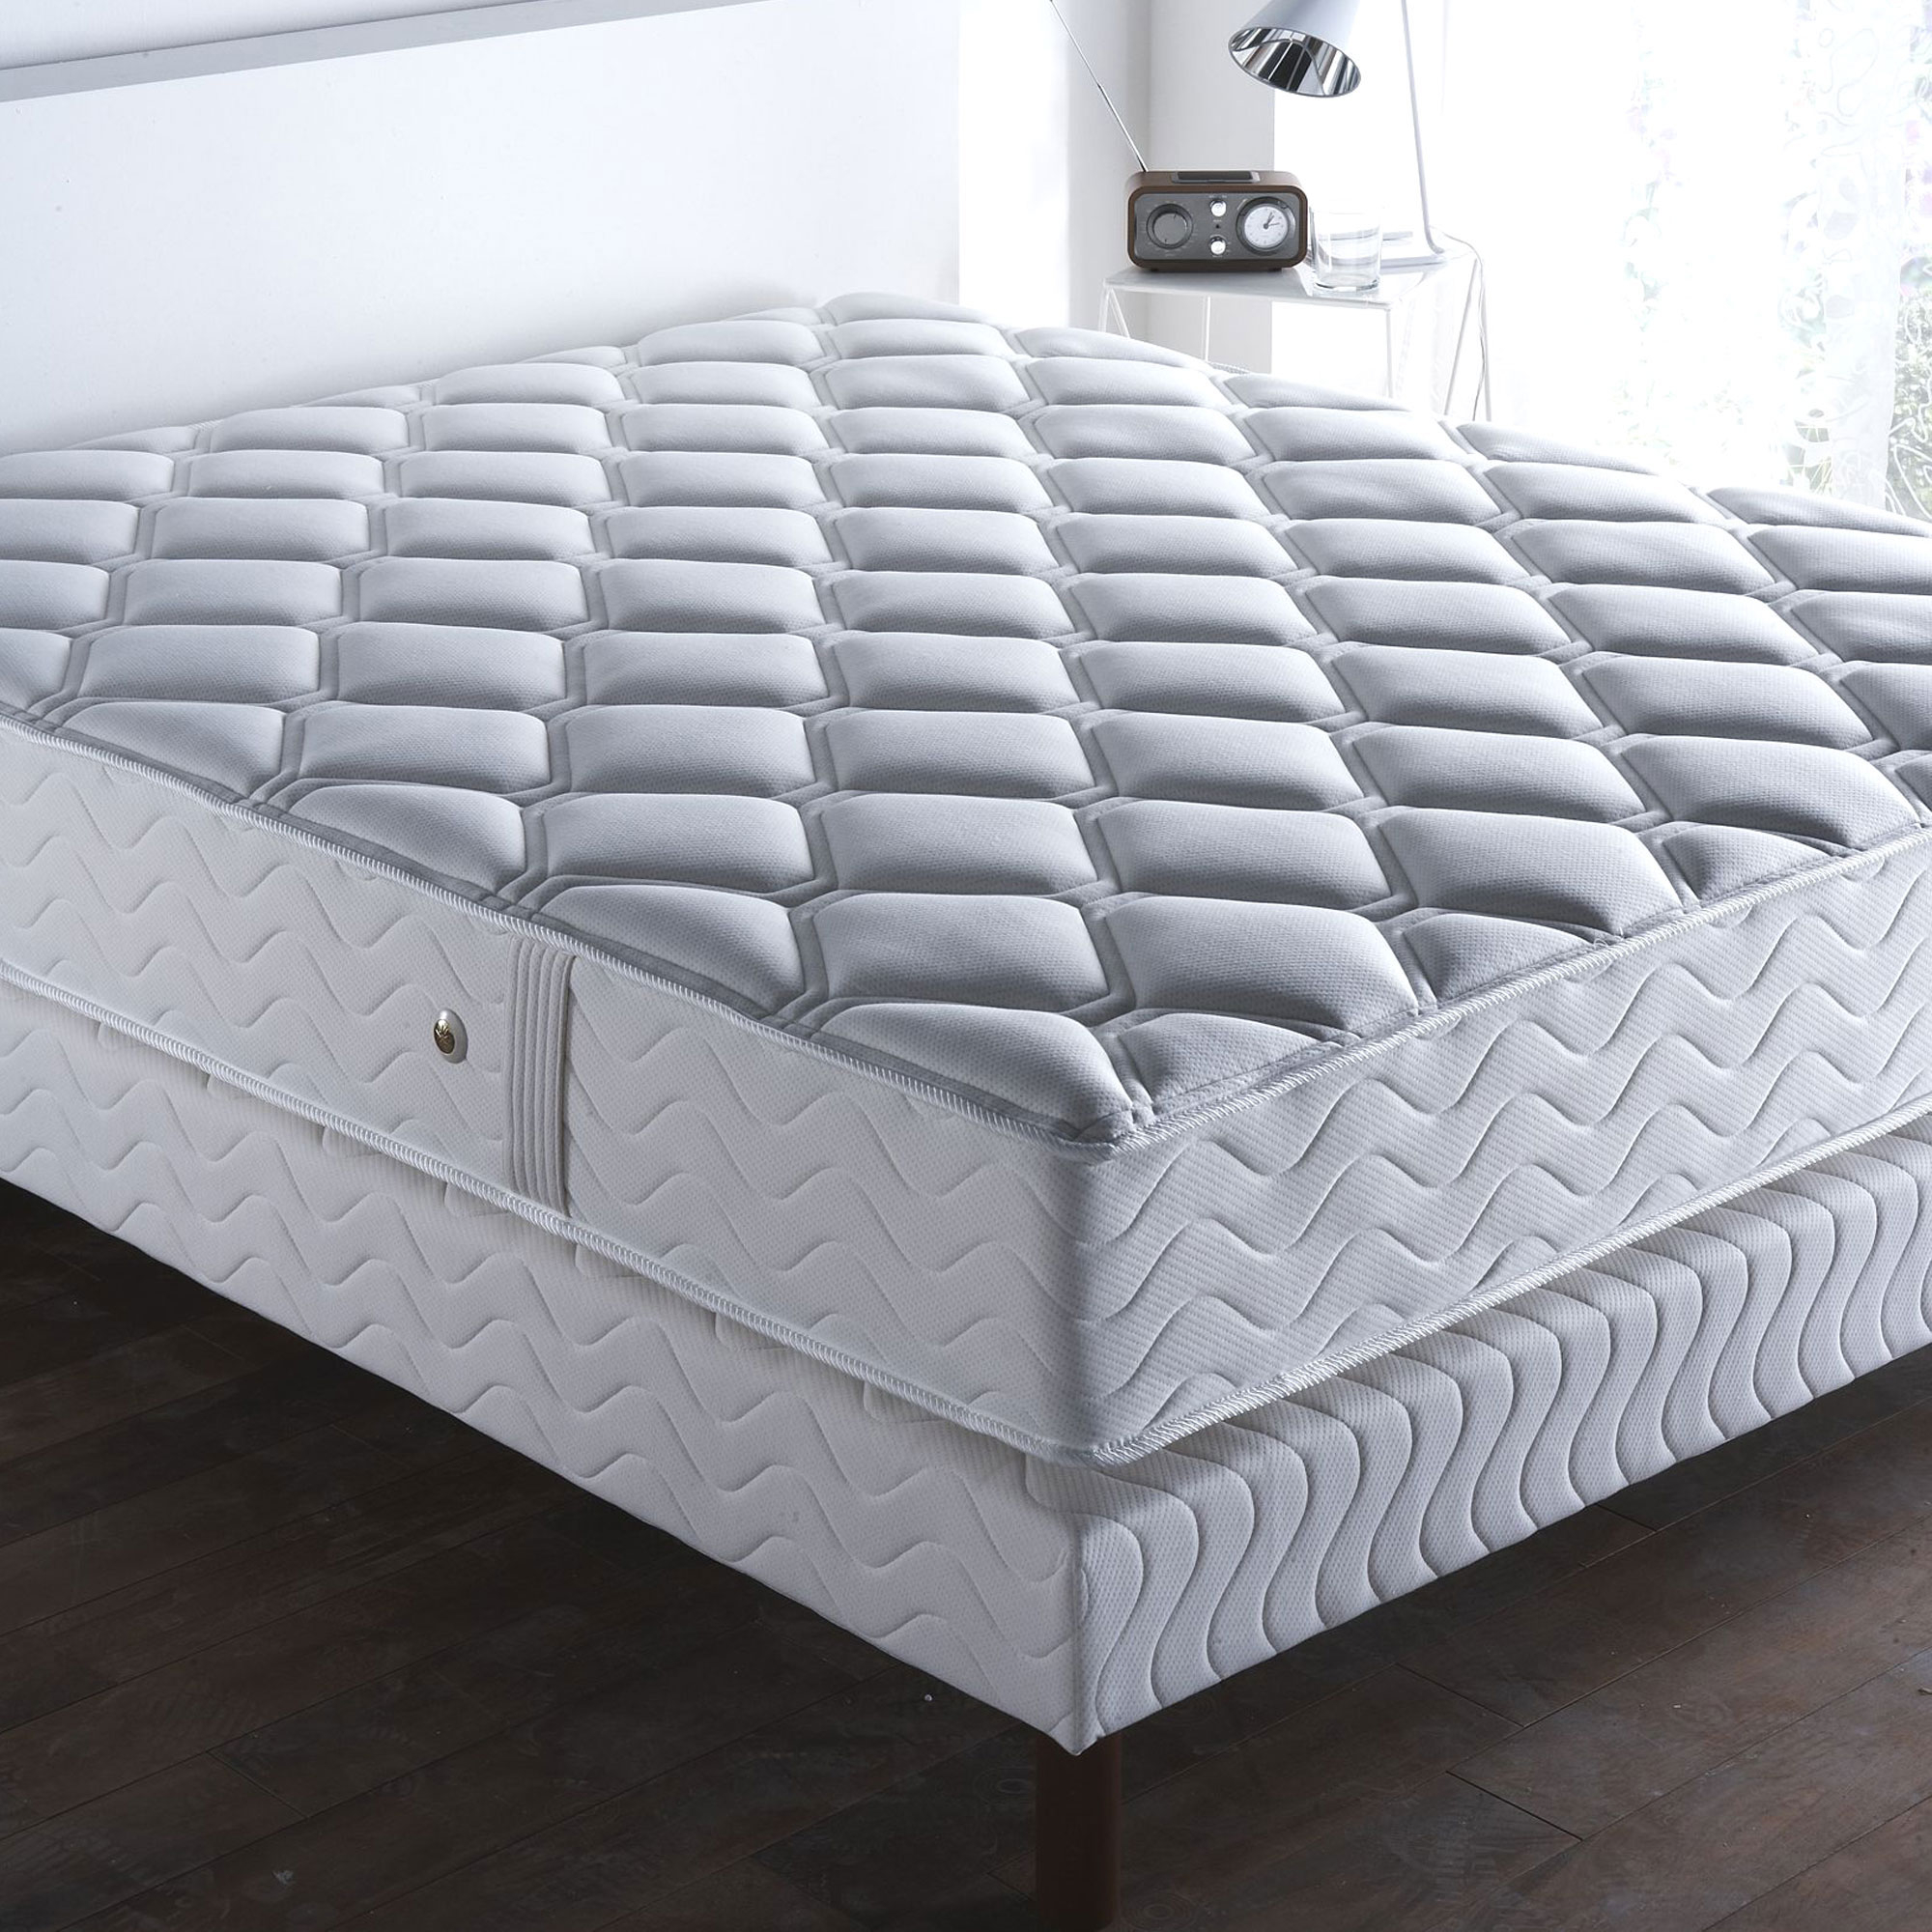 matelas haute rsilience elegant matelas bne mousse polyurthane haute rsilience kgm sans cfc. Black Bedroom Furniture Sets. Home Design Ideas